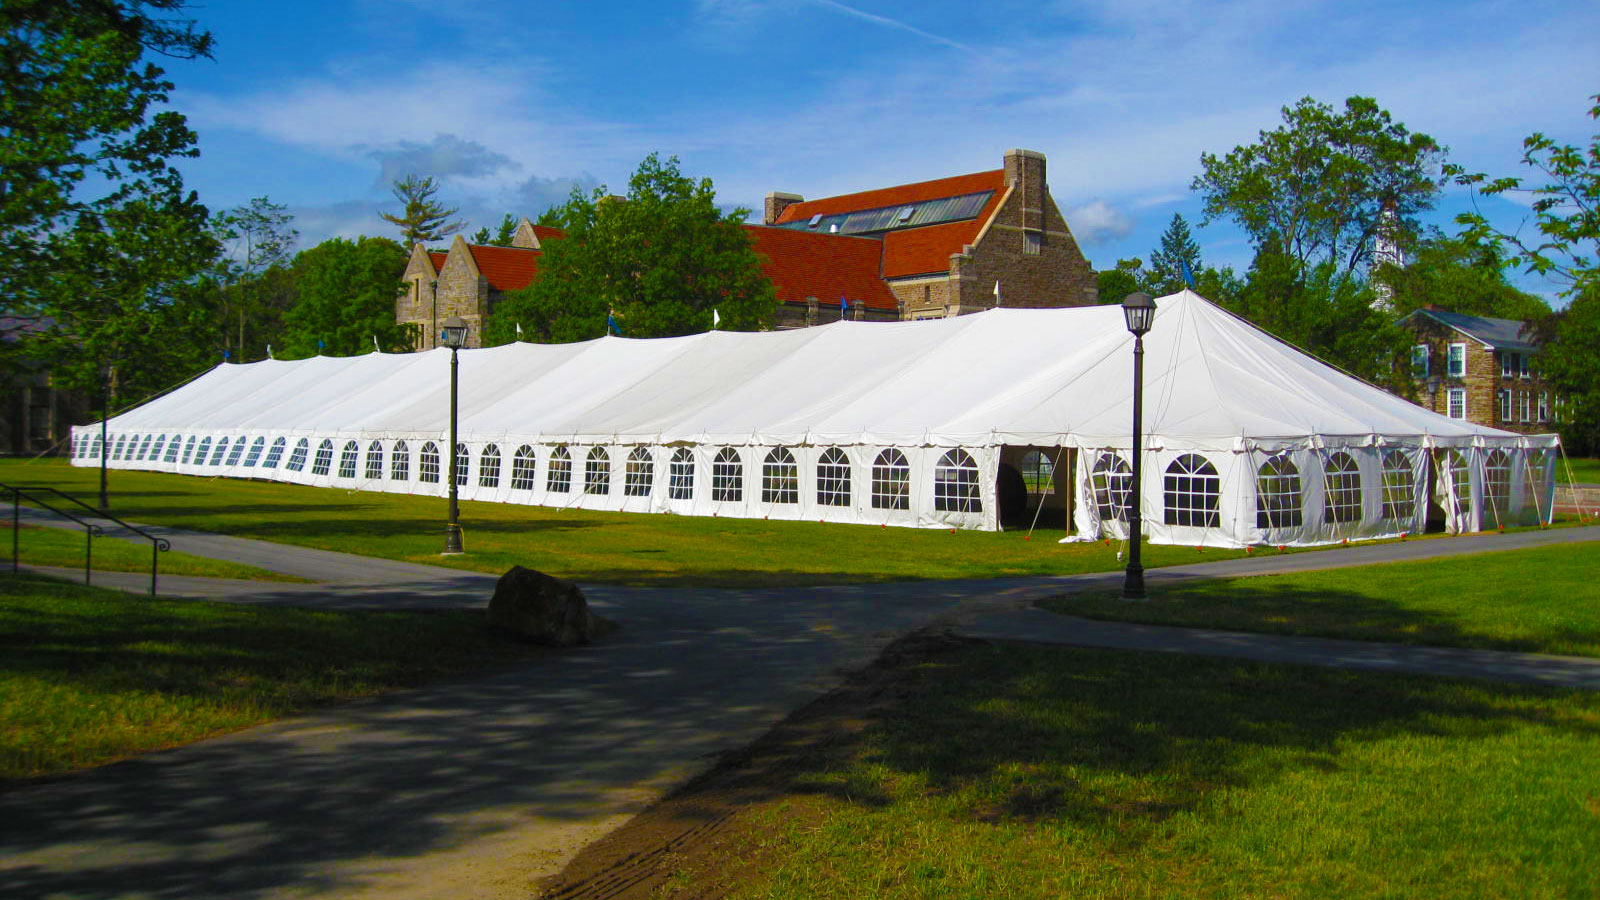 Tent Rentals for Weddings